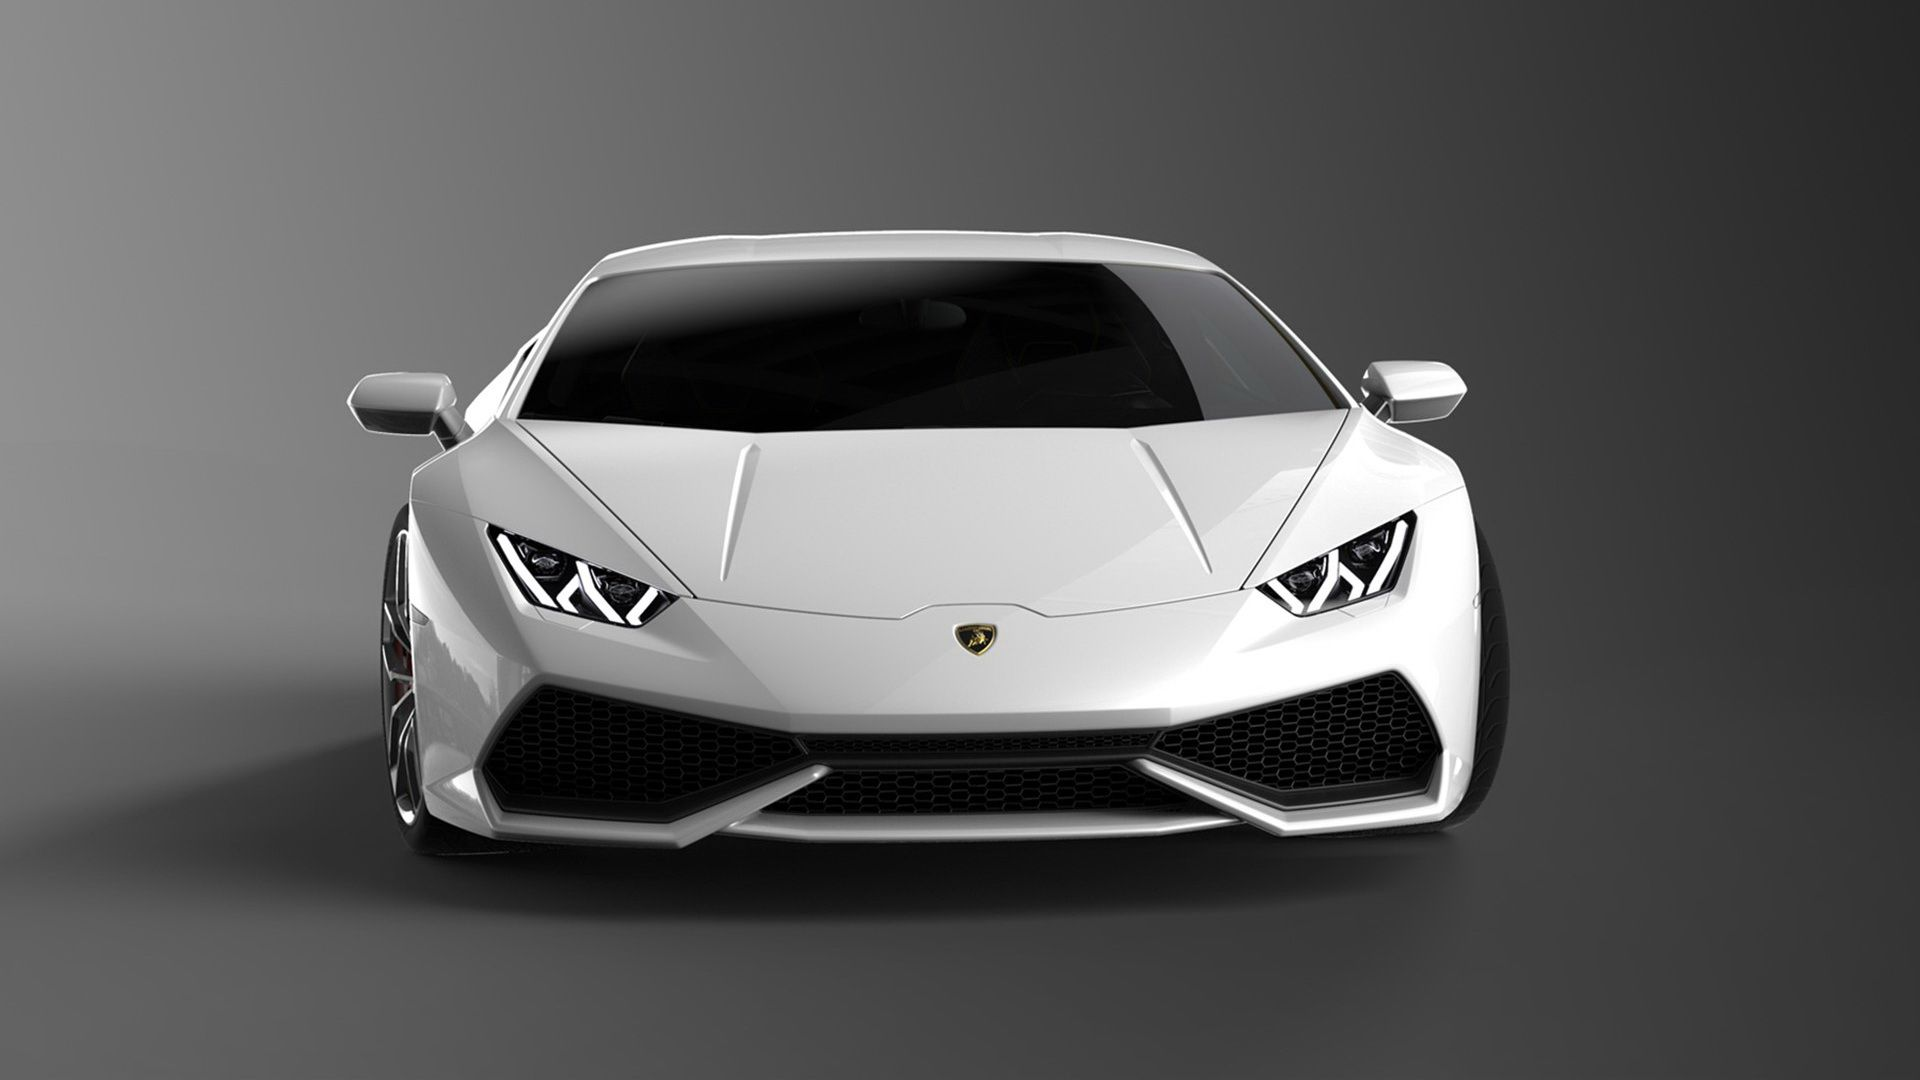 Lamborghini Huracan 332721 Hd Wallpaper Backgrounds